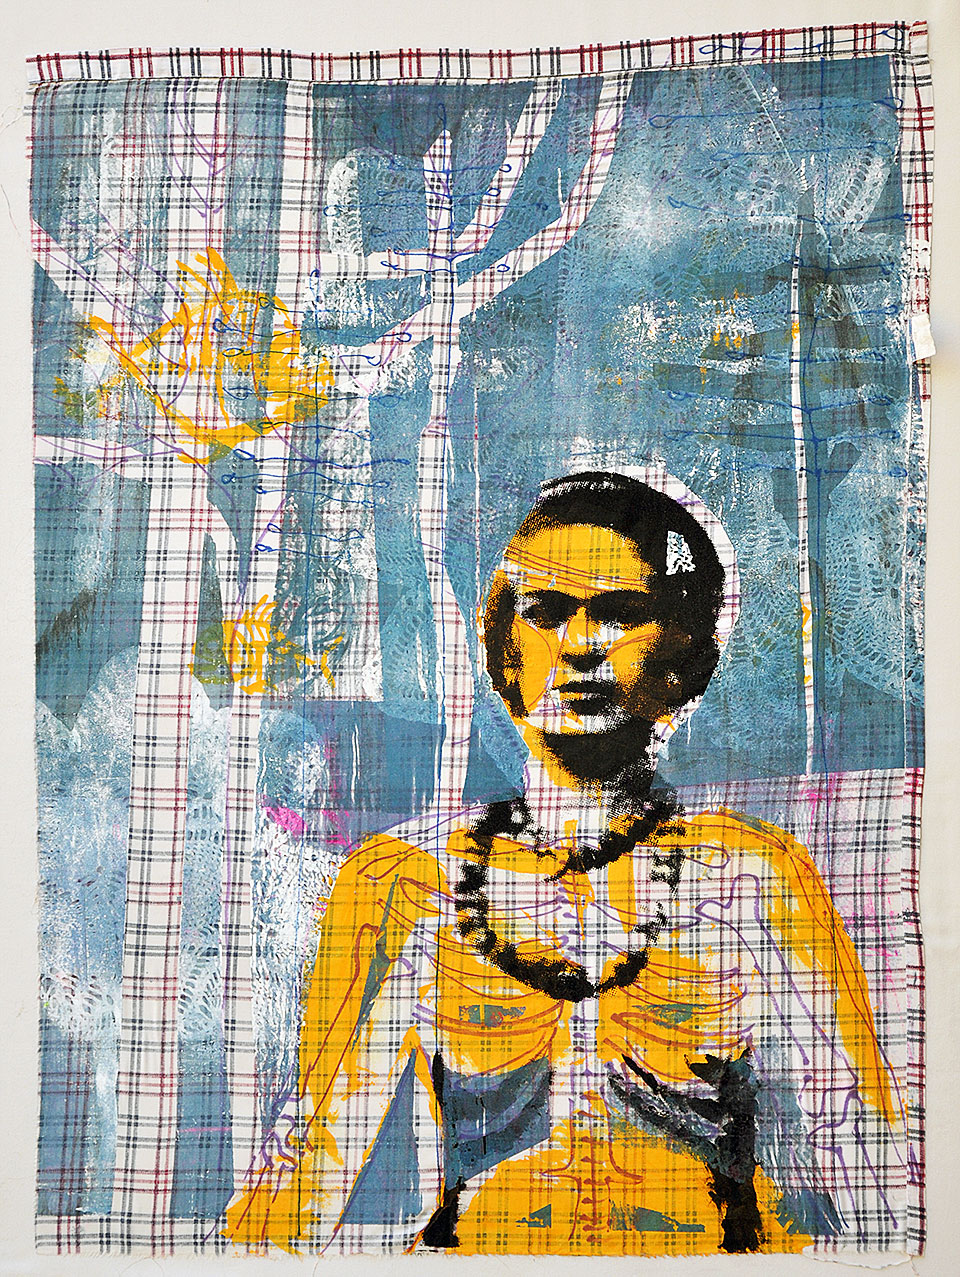 painting: Frida/Thirsty by Woodie Anderson